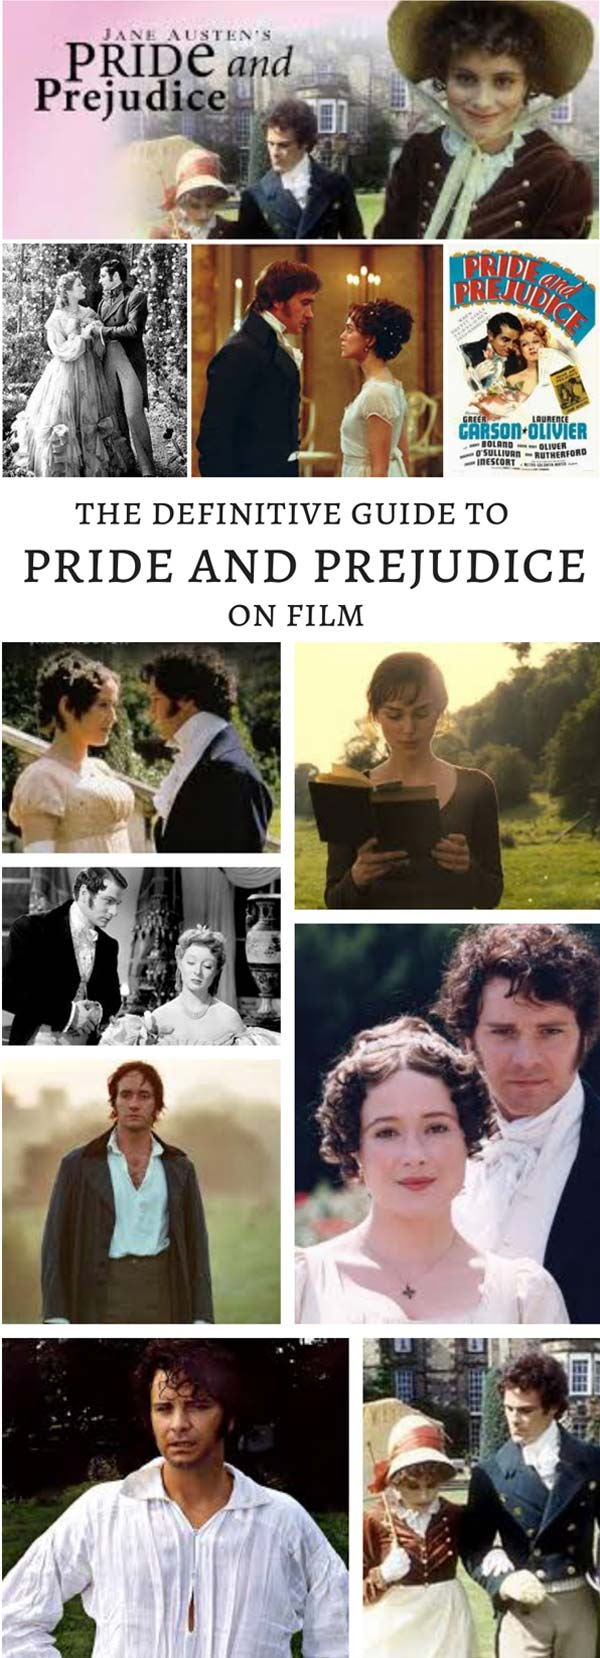 The Definitive Guide to Pride and Prejudice on Film (2005 Focus Features Edition)